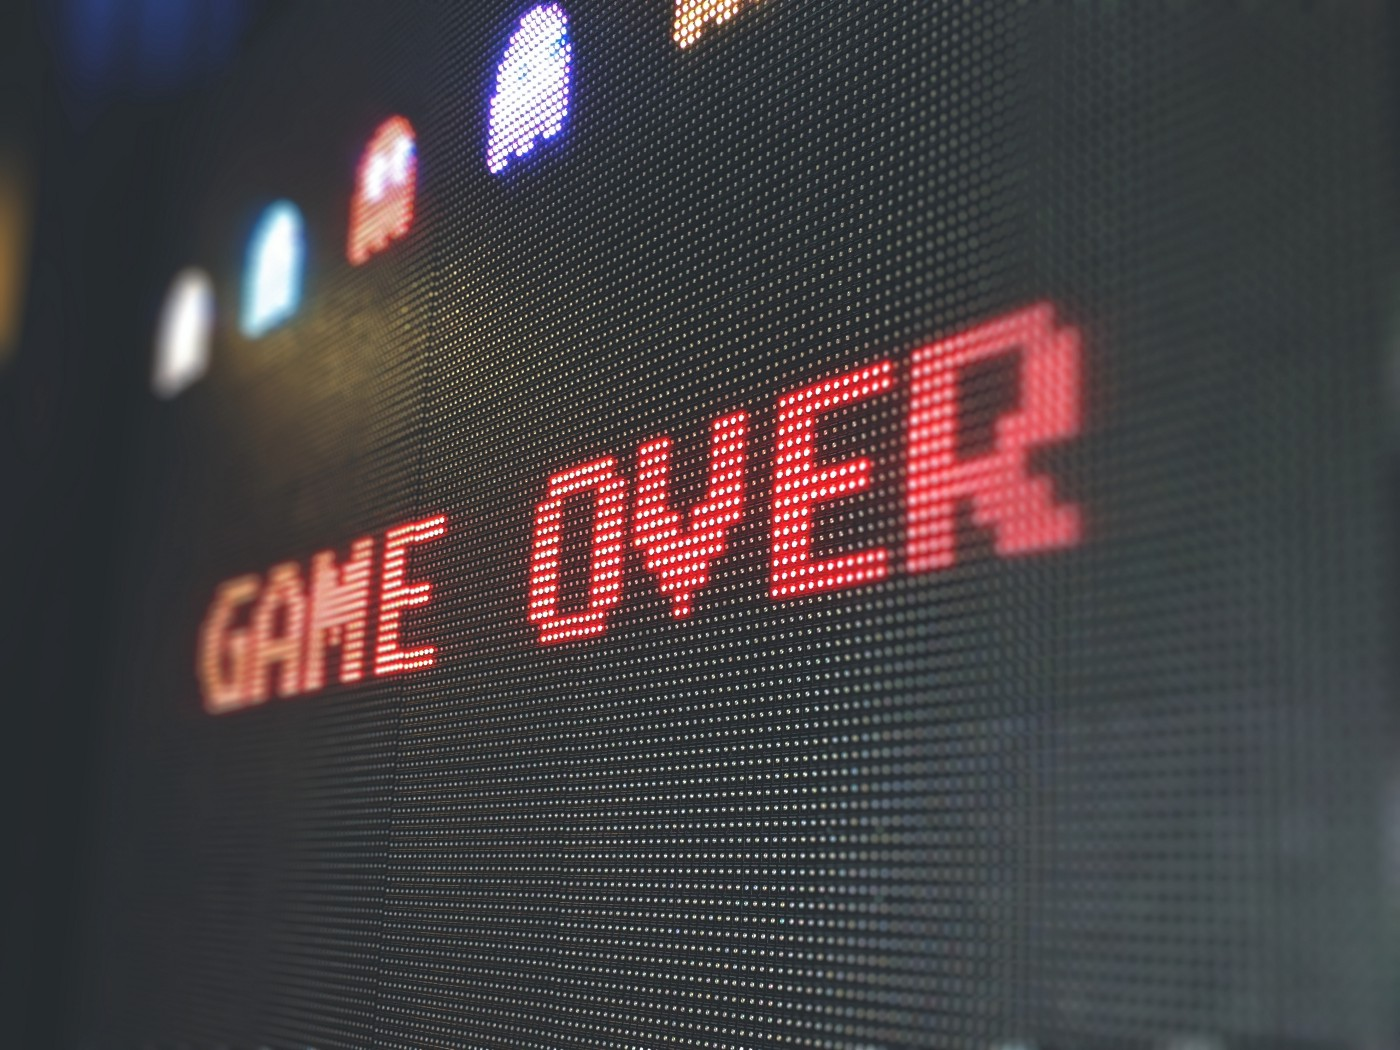 Game over message, representing the frustration of running out of memory.